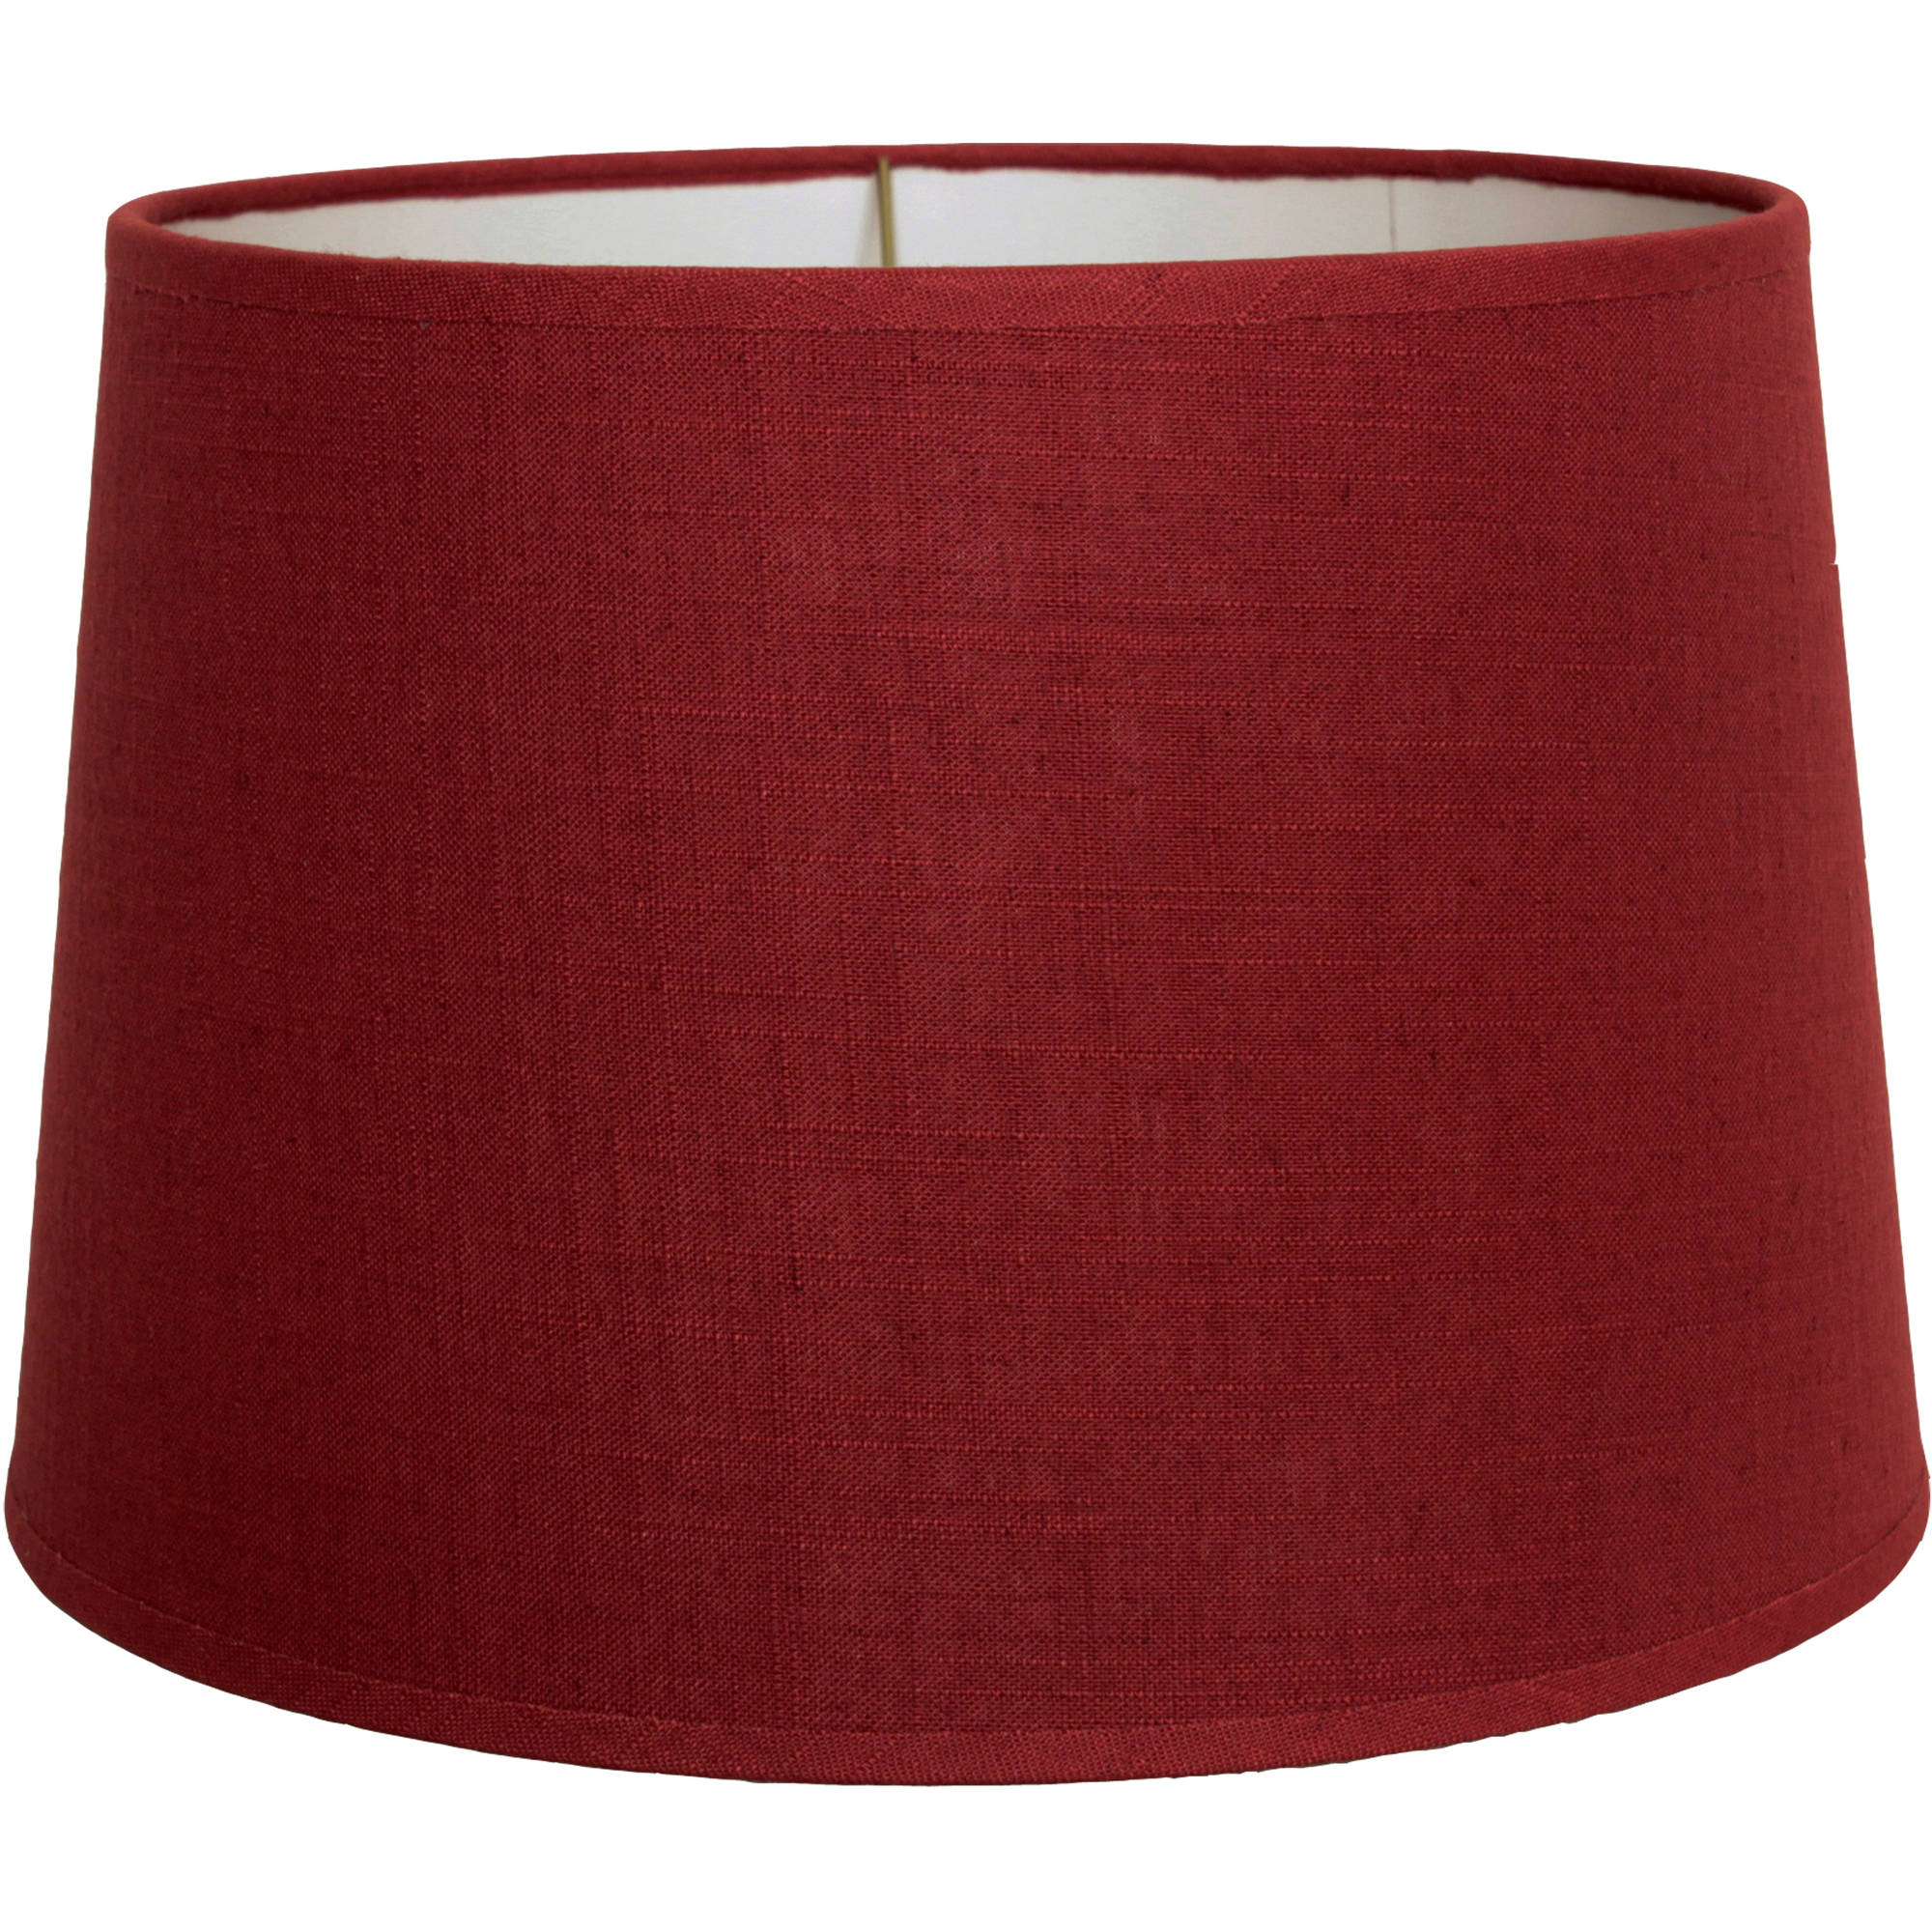 Classic Drum Lamp Shade, Multiple Colors (base not included)